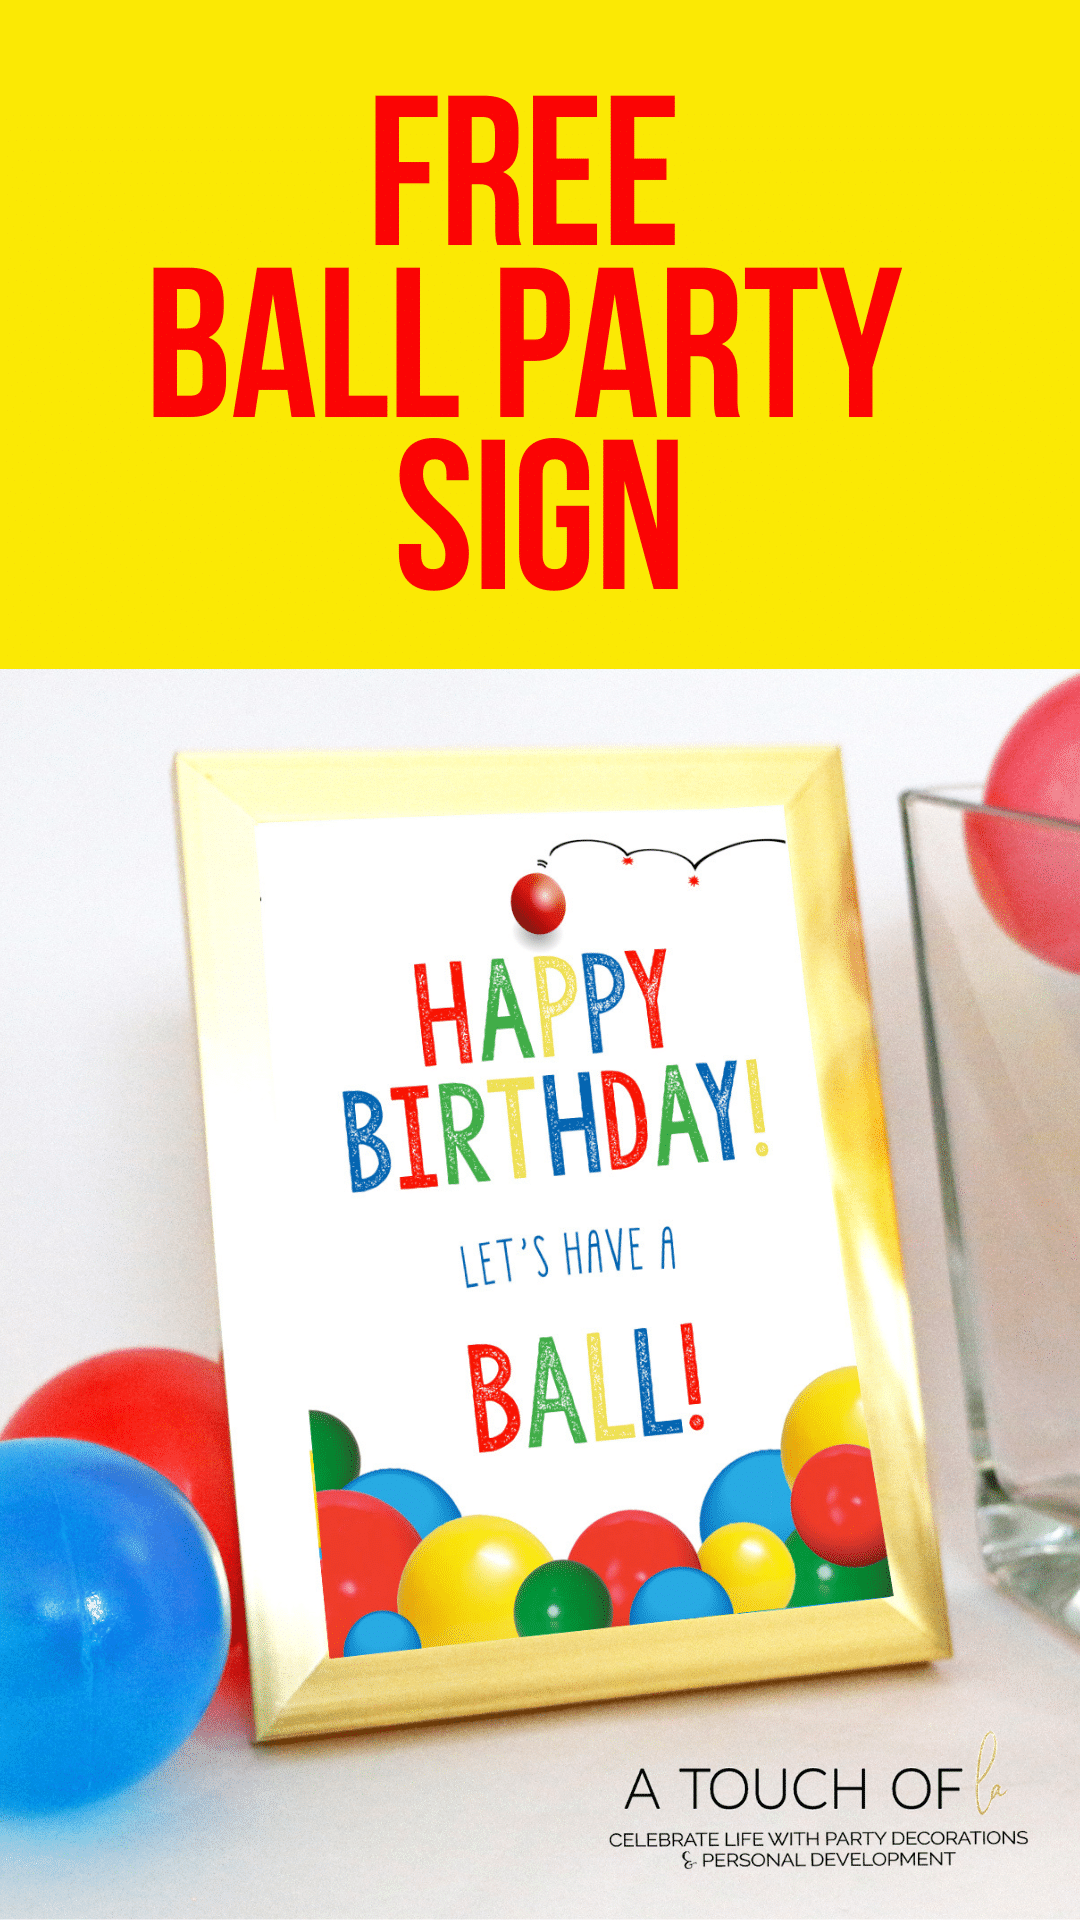 Free Ball Party Sign